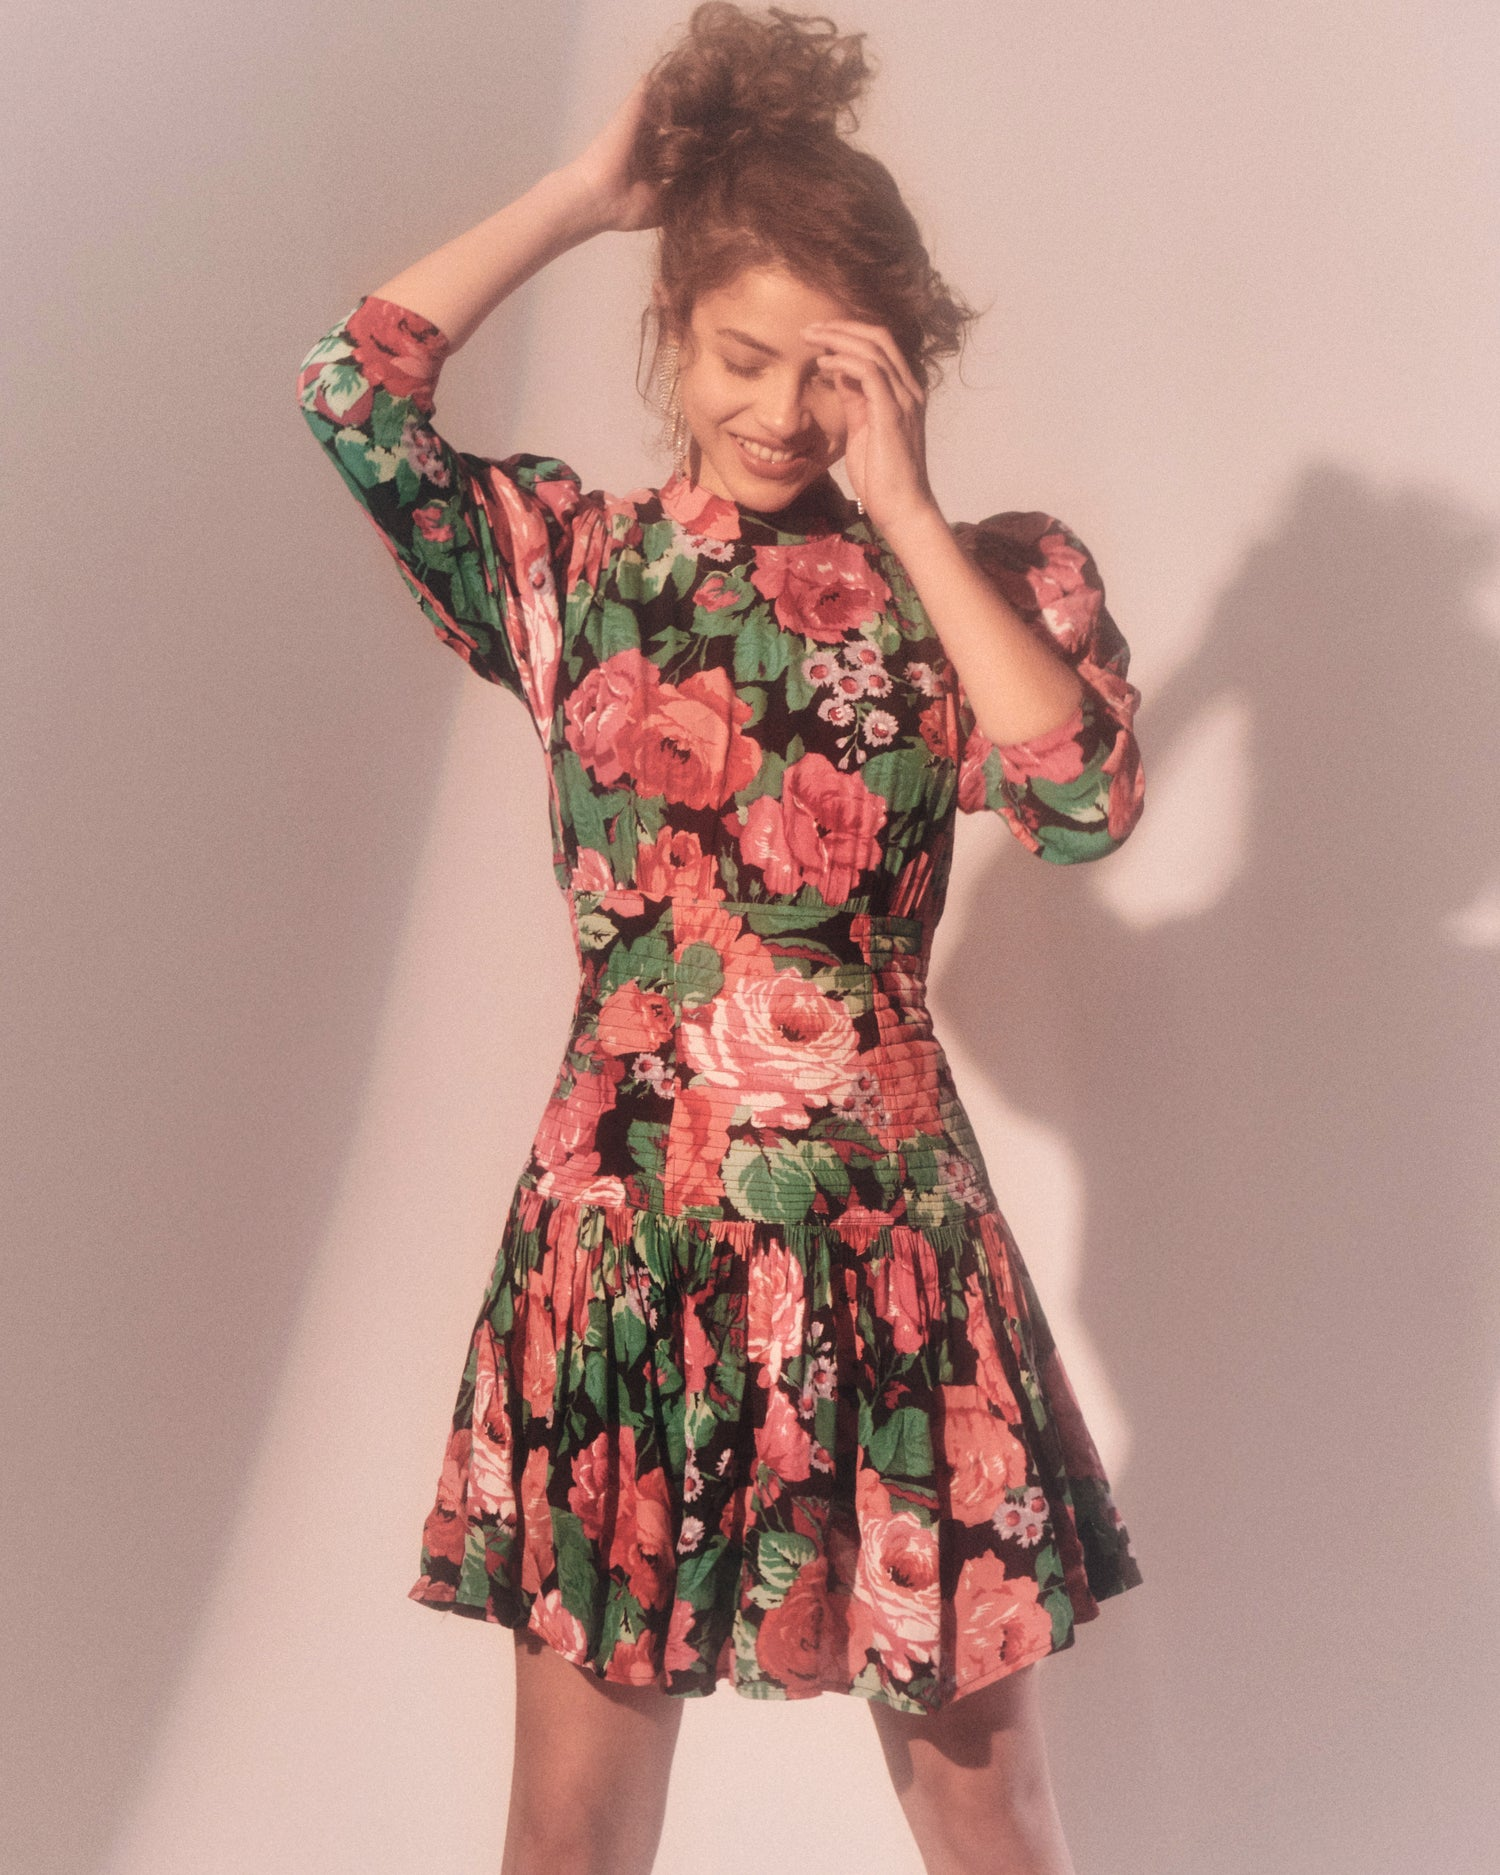 Bed of Roses Floral Dress